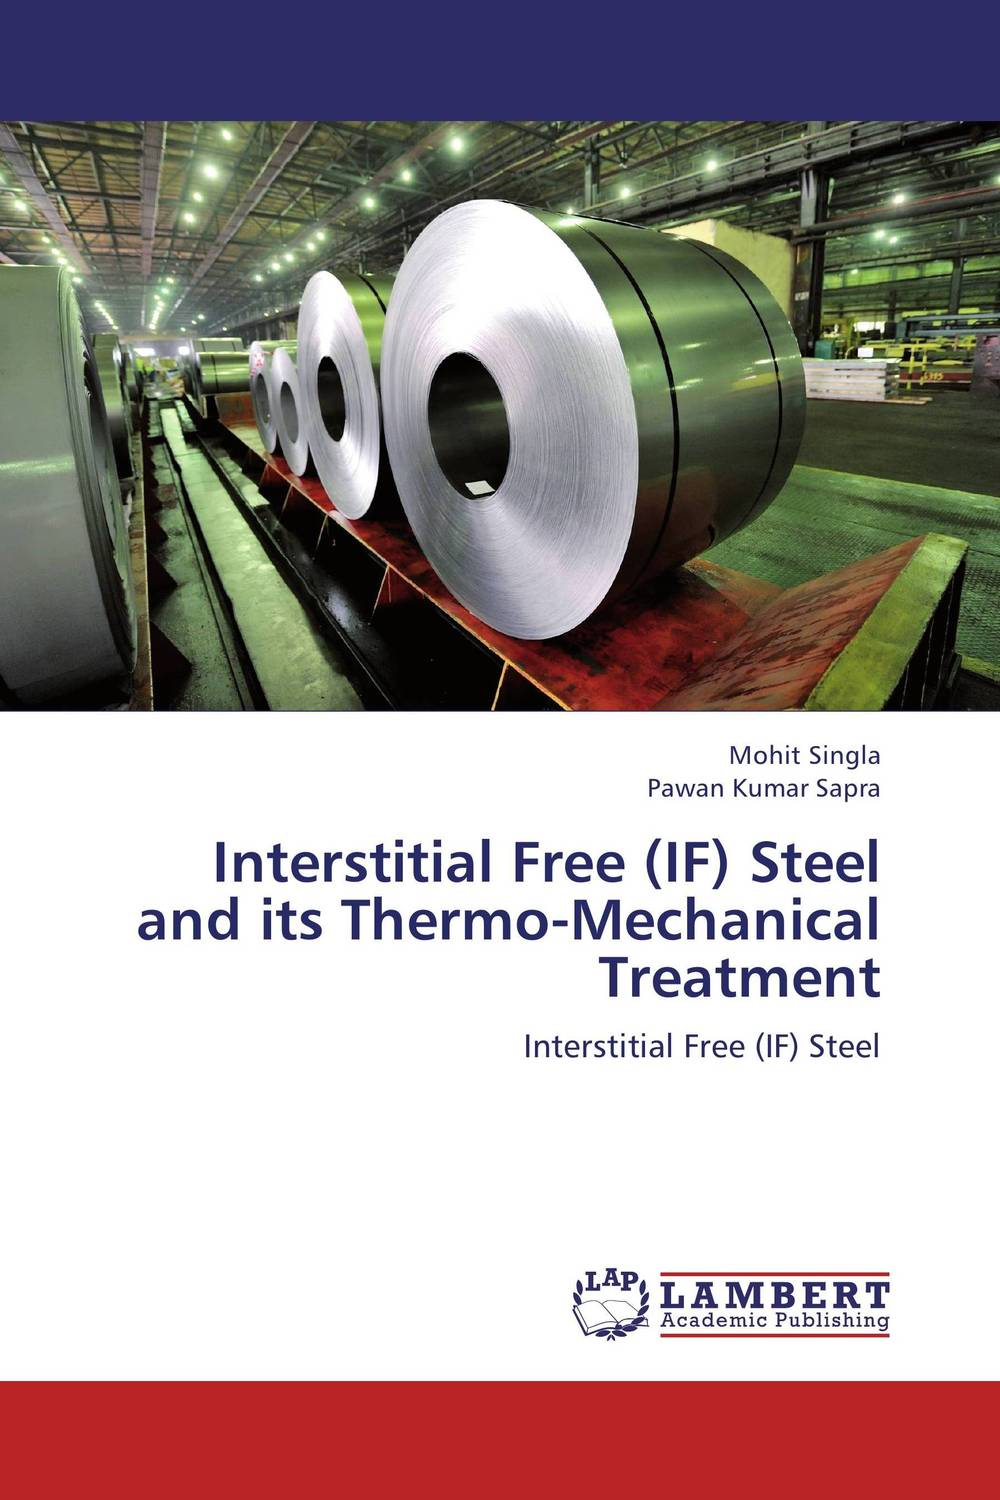 Interstitial Free (IF) Steel and its Thermo-Mechanical Treatment formability